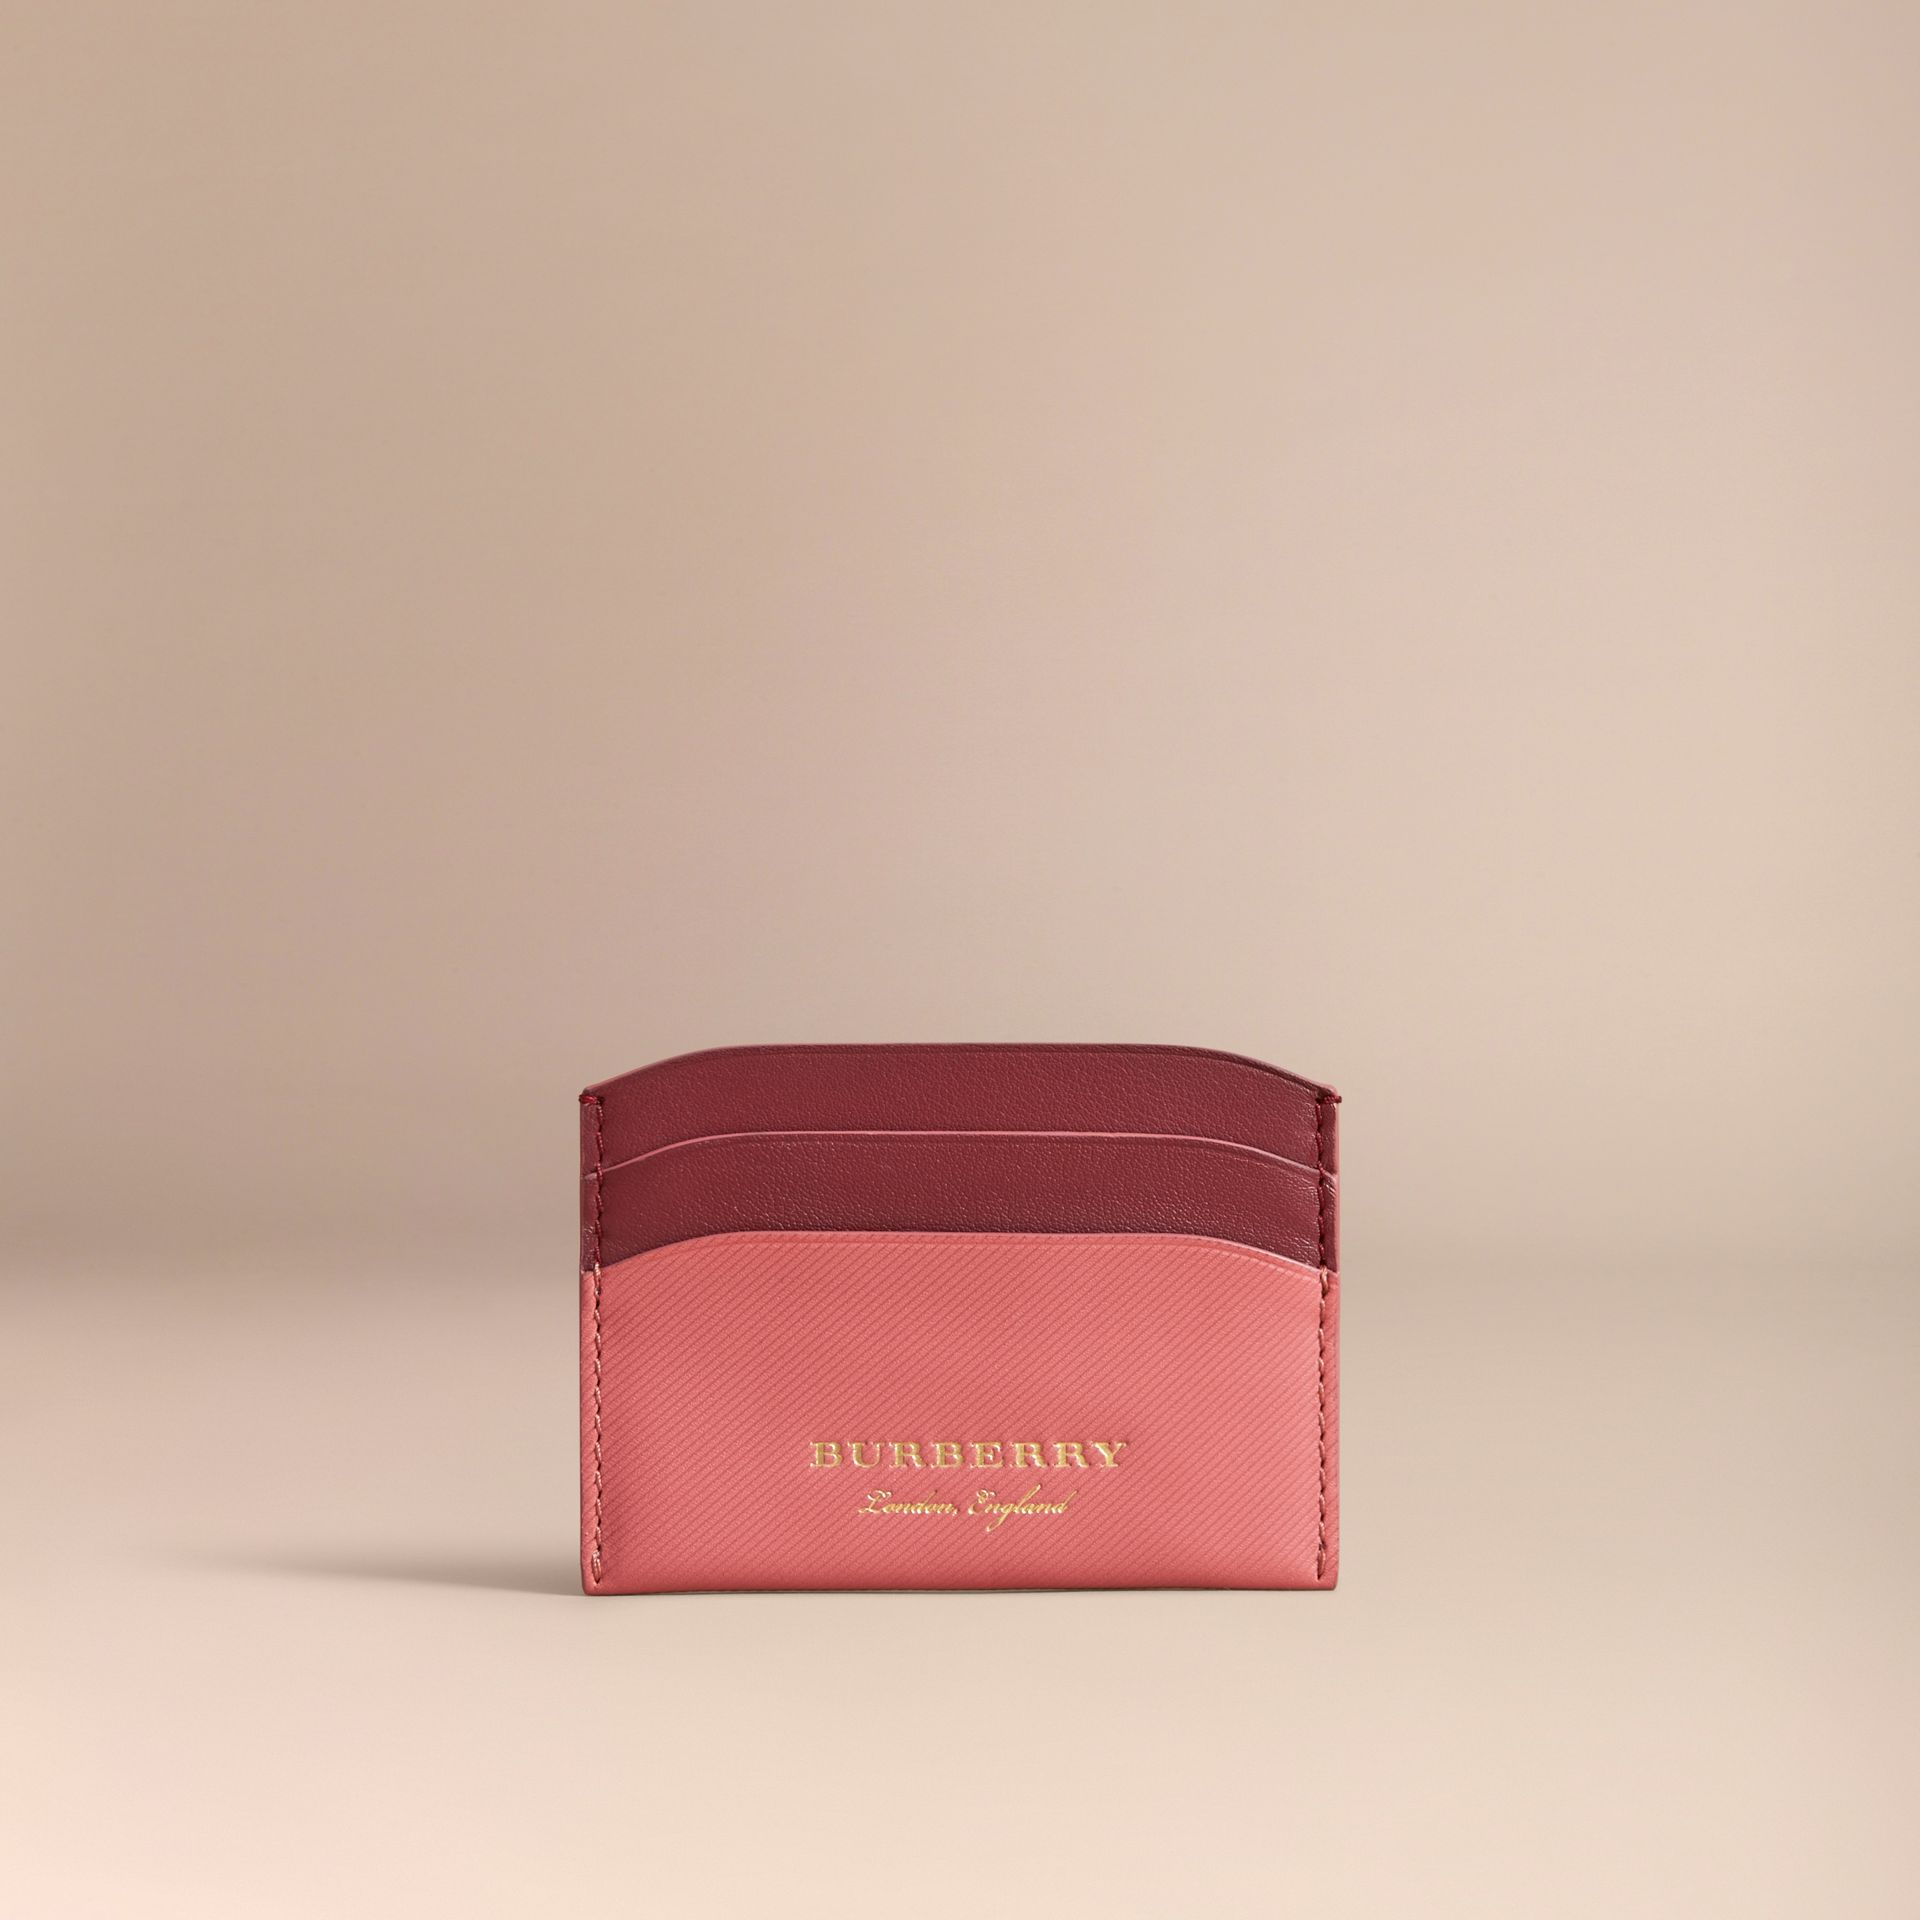 Two-tone Trench Leather Card Case in Blossom Pink/ Antique Red - Women | Burberry United Kingdom - gallery image 4